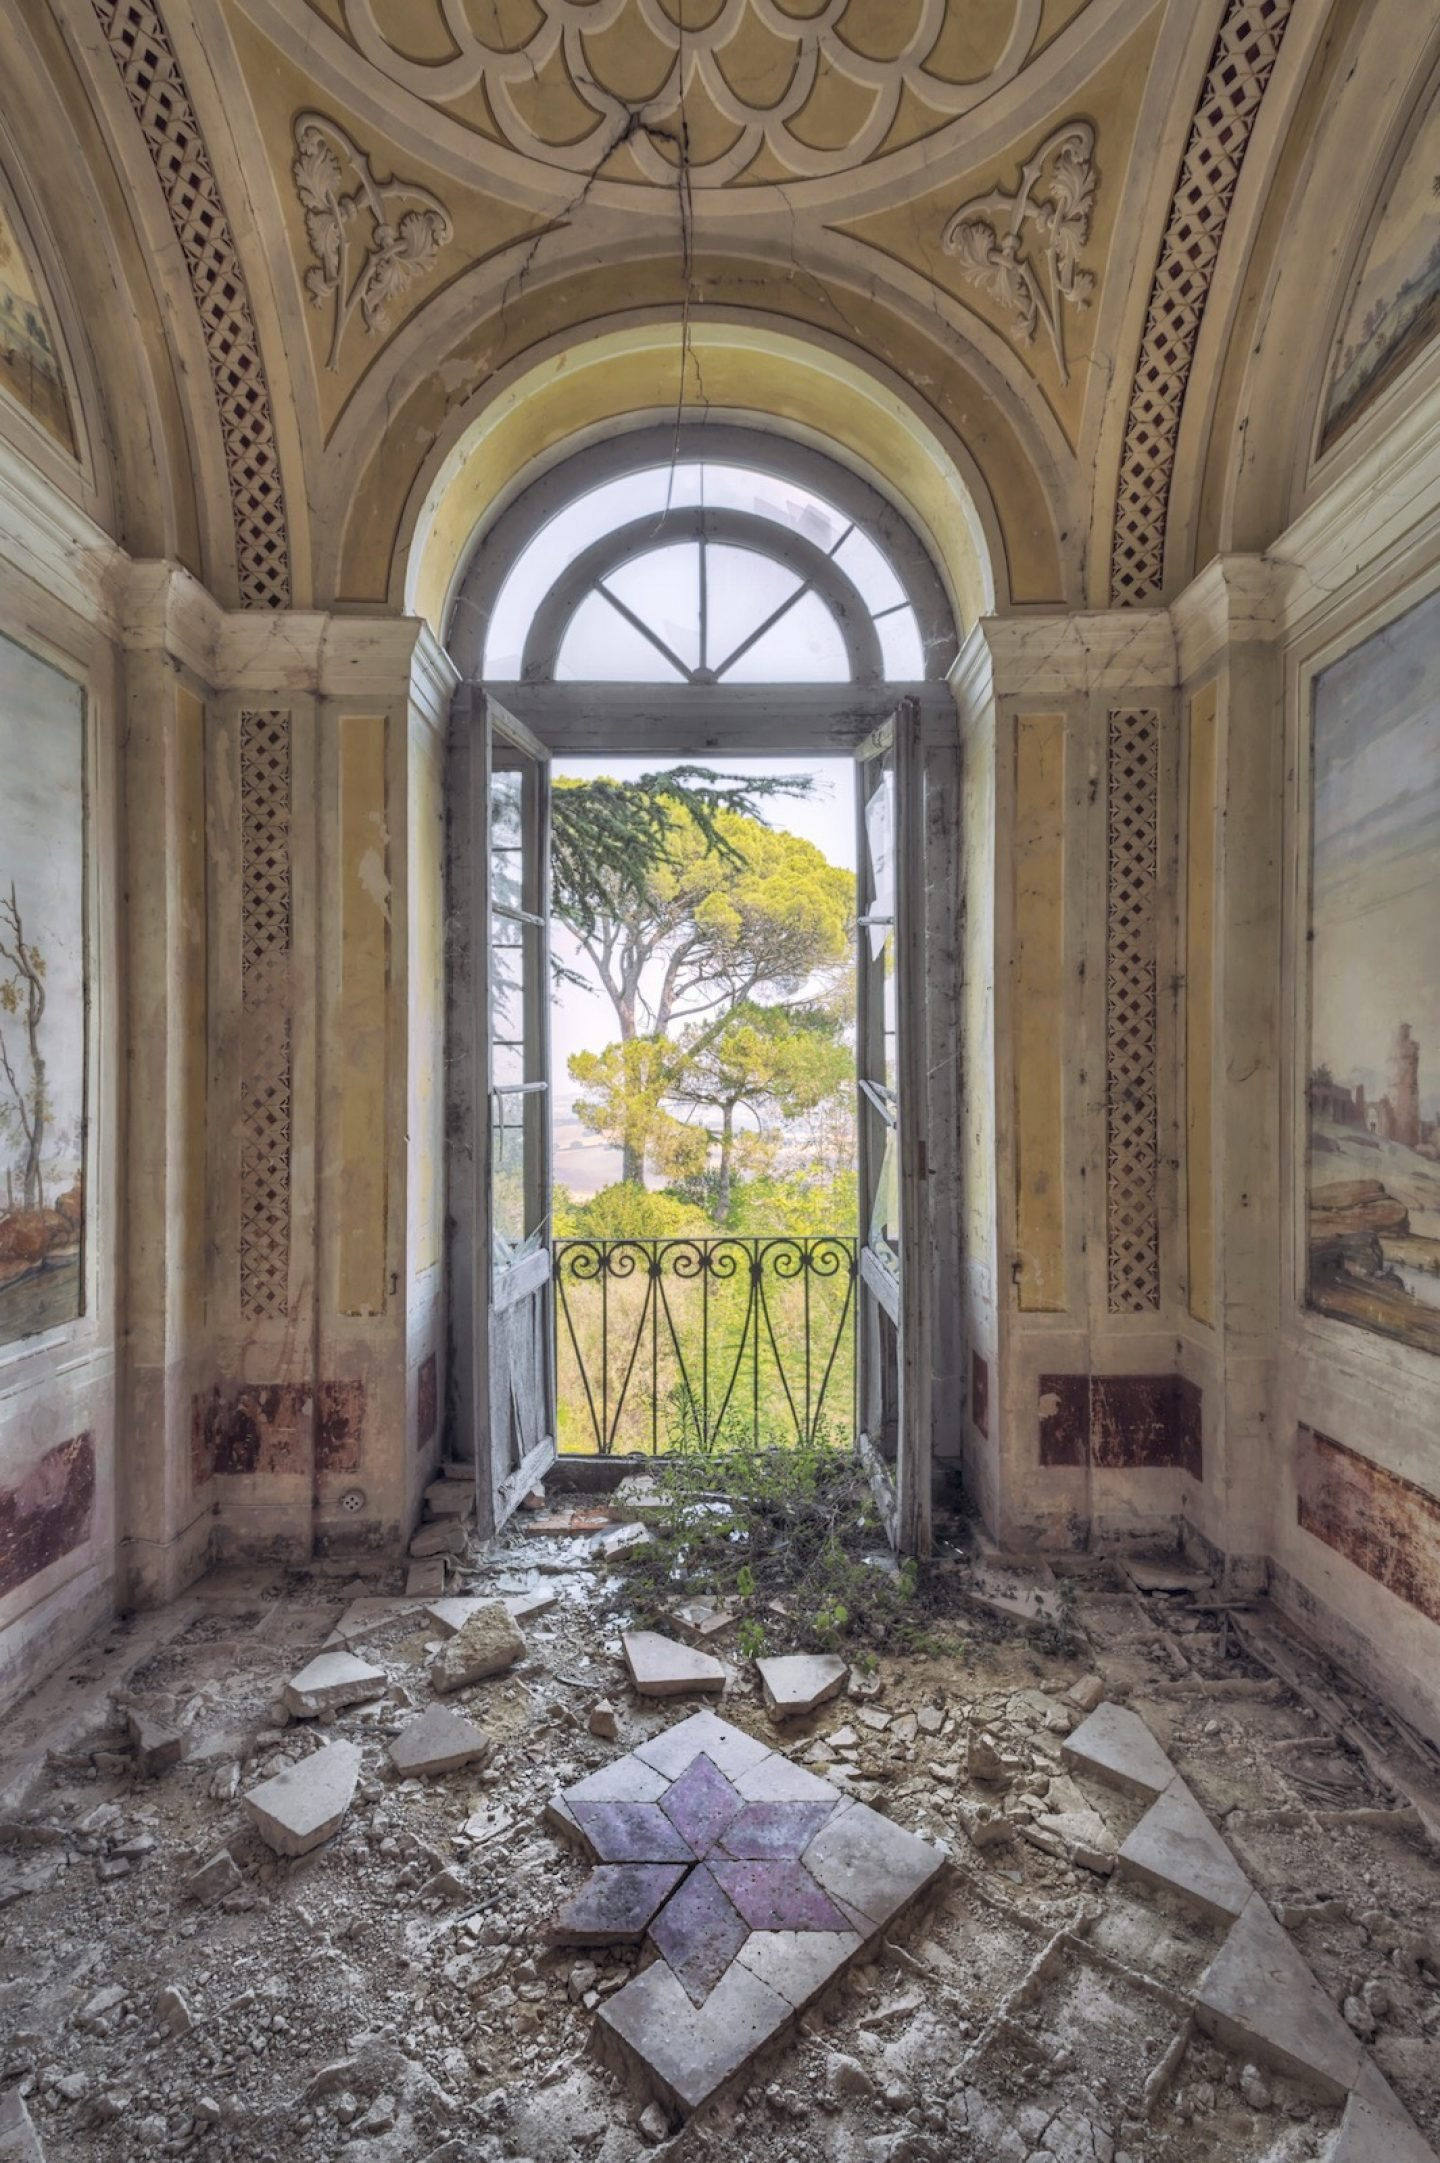 baroque room with view in nature in abandoned palace